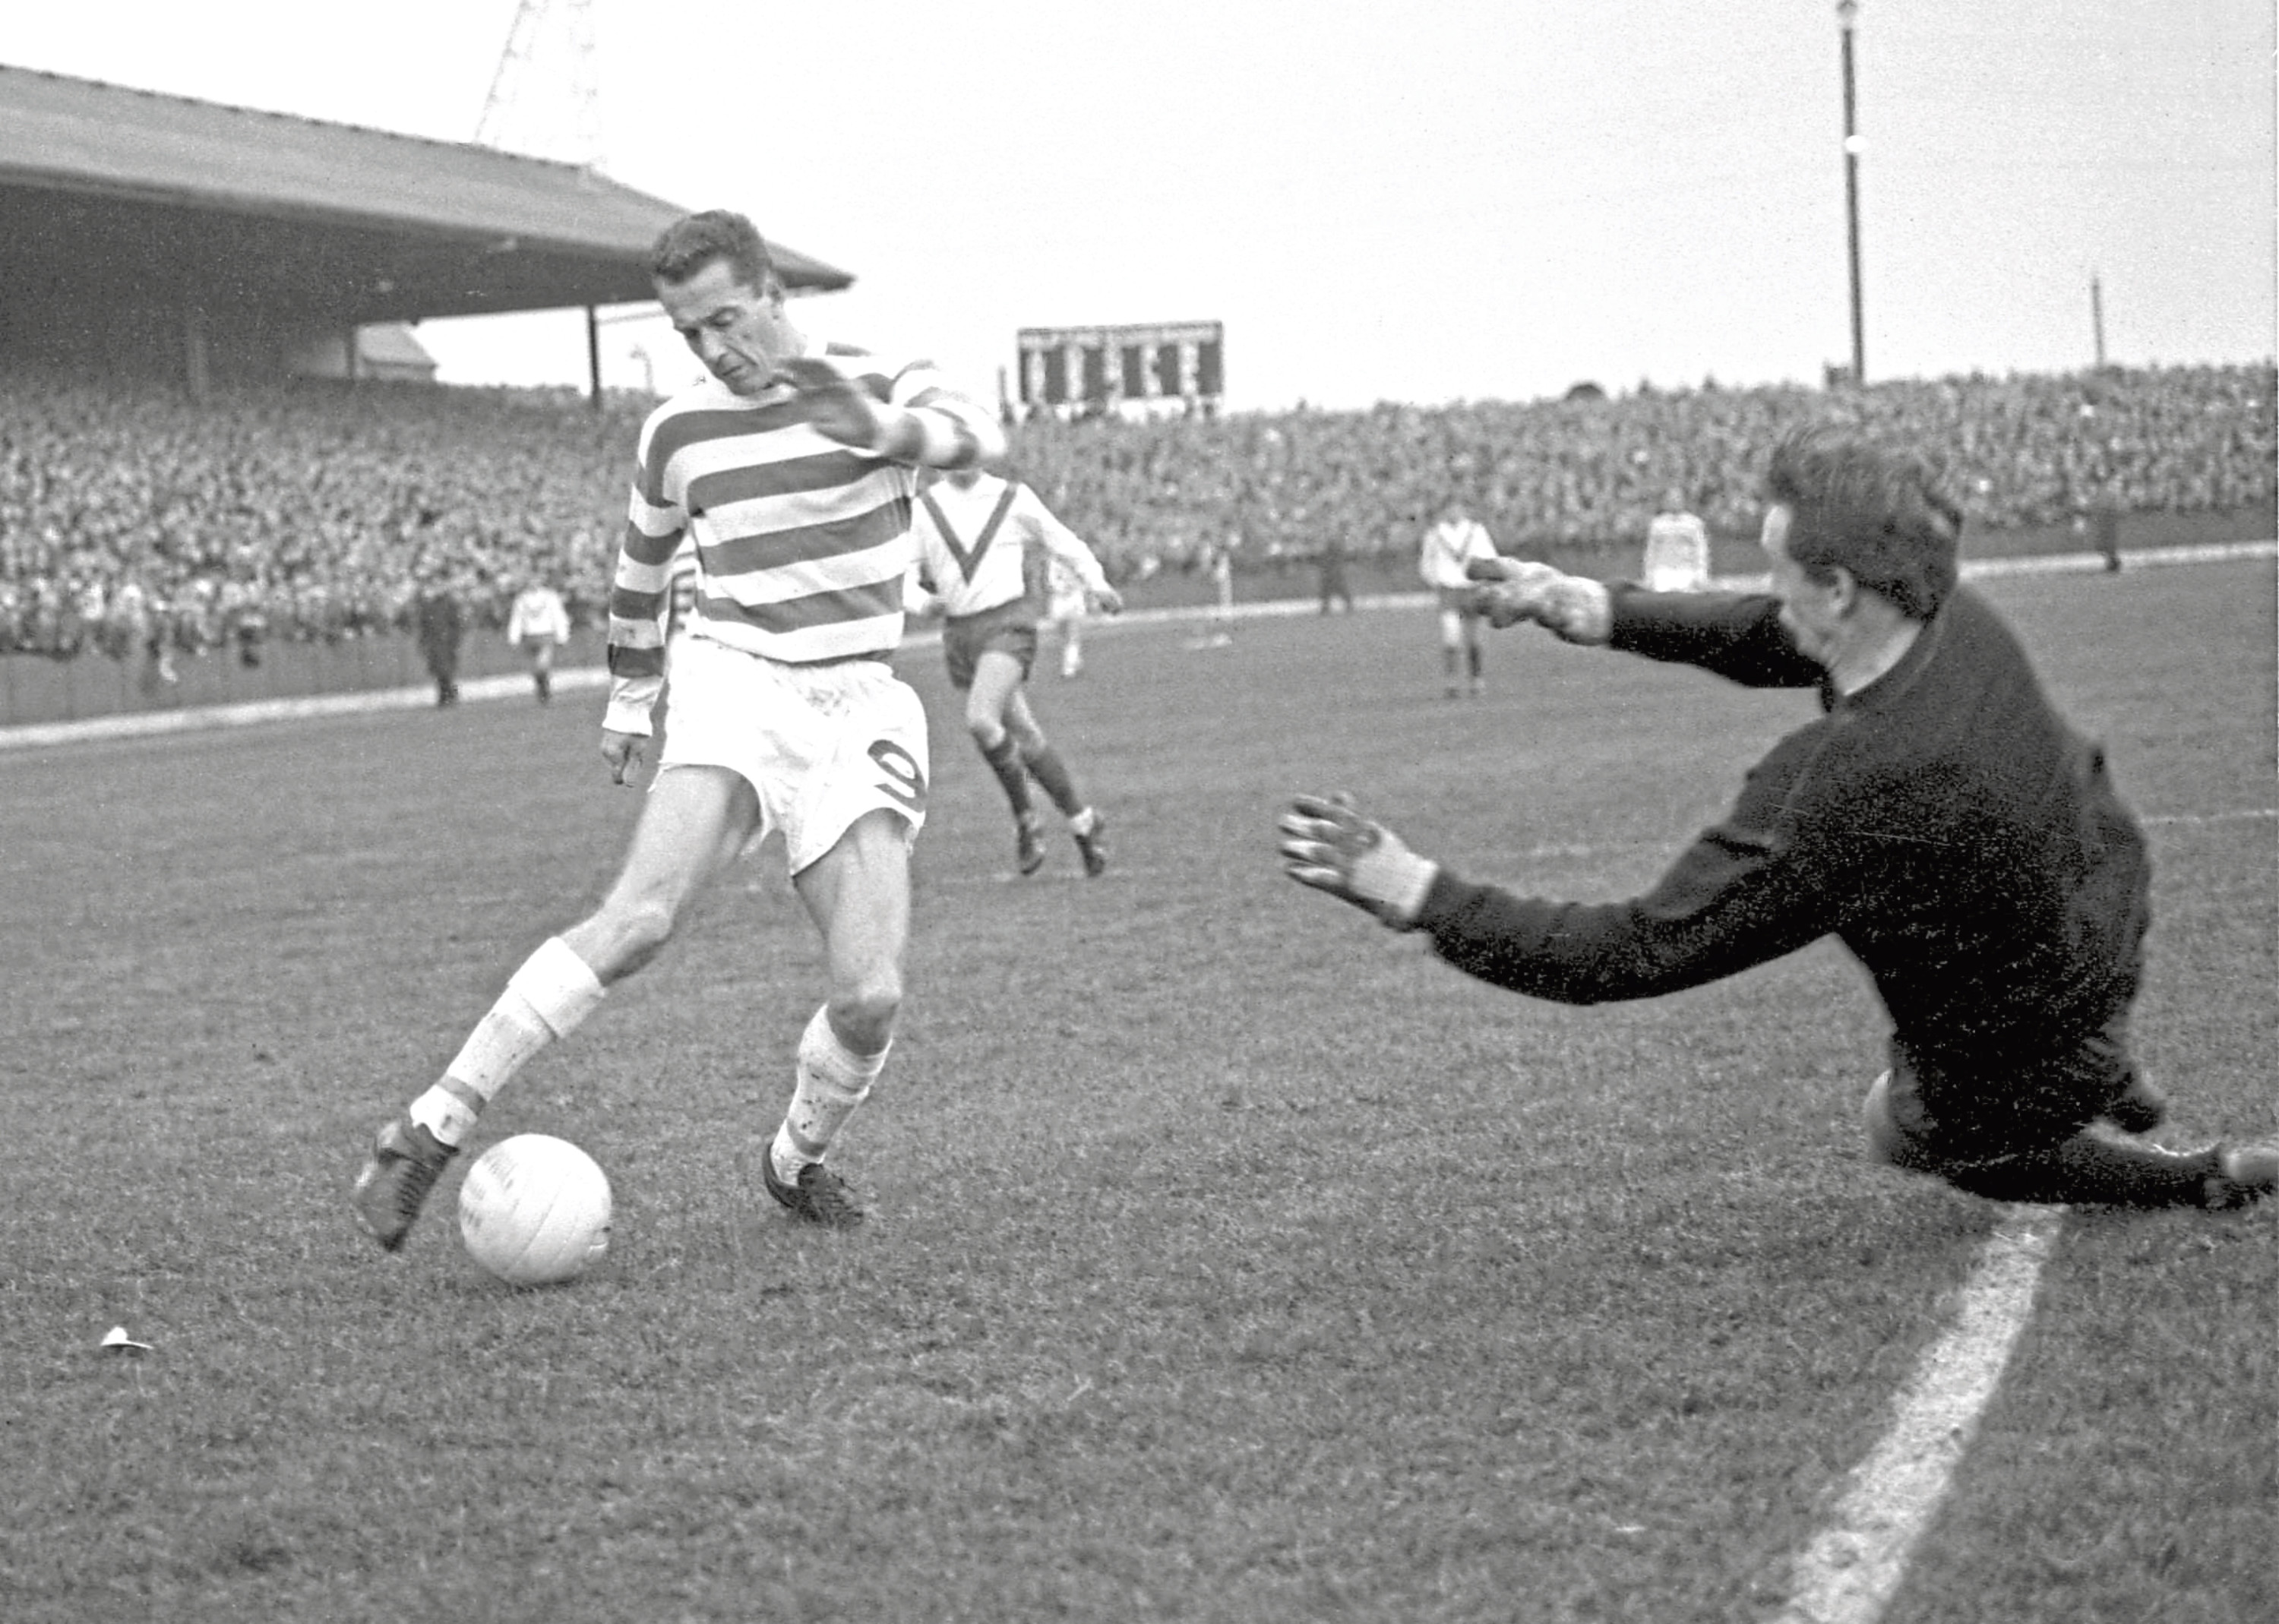 Celtic's Steve Chalmers in action against Airdrie goalkeeper Roddy McKenzie